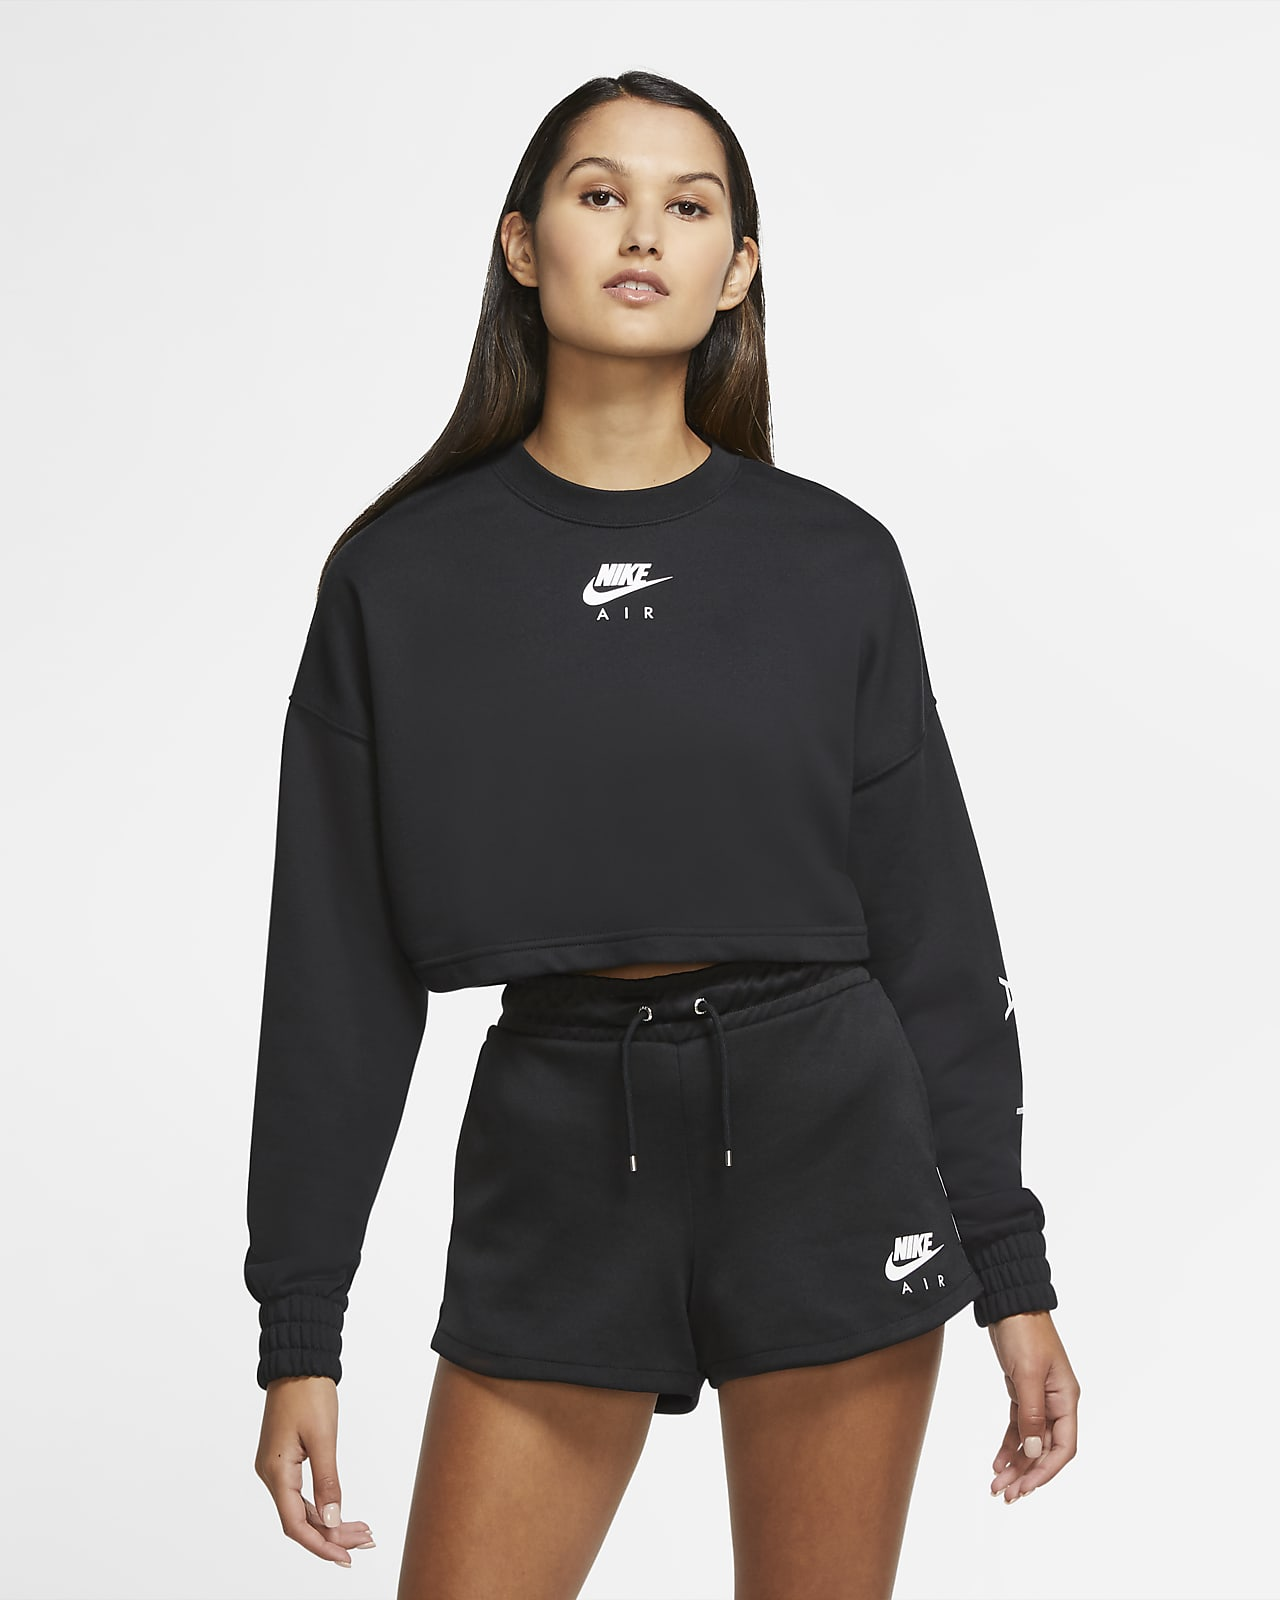 Nike Air Women's Cropped Fleece Crew